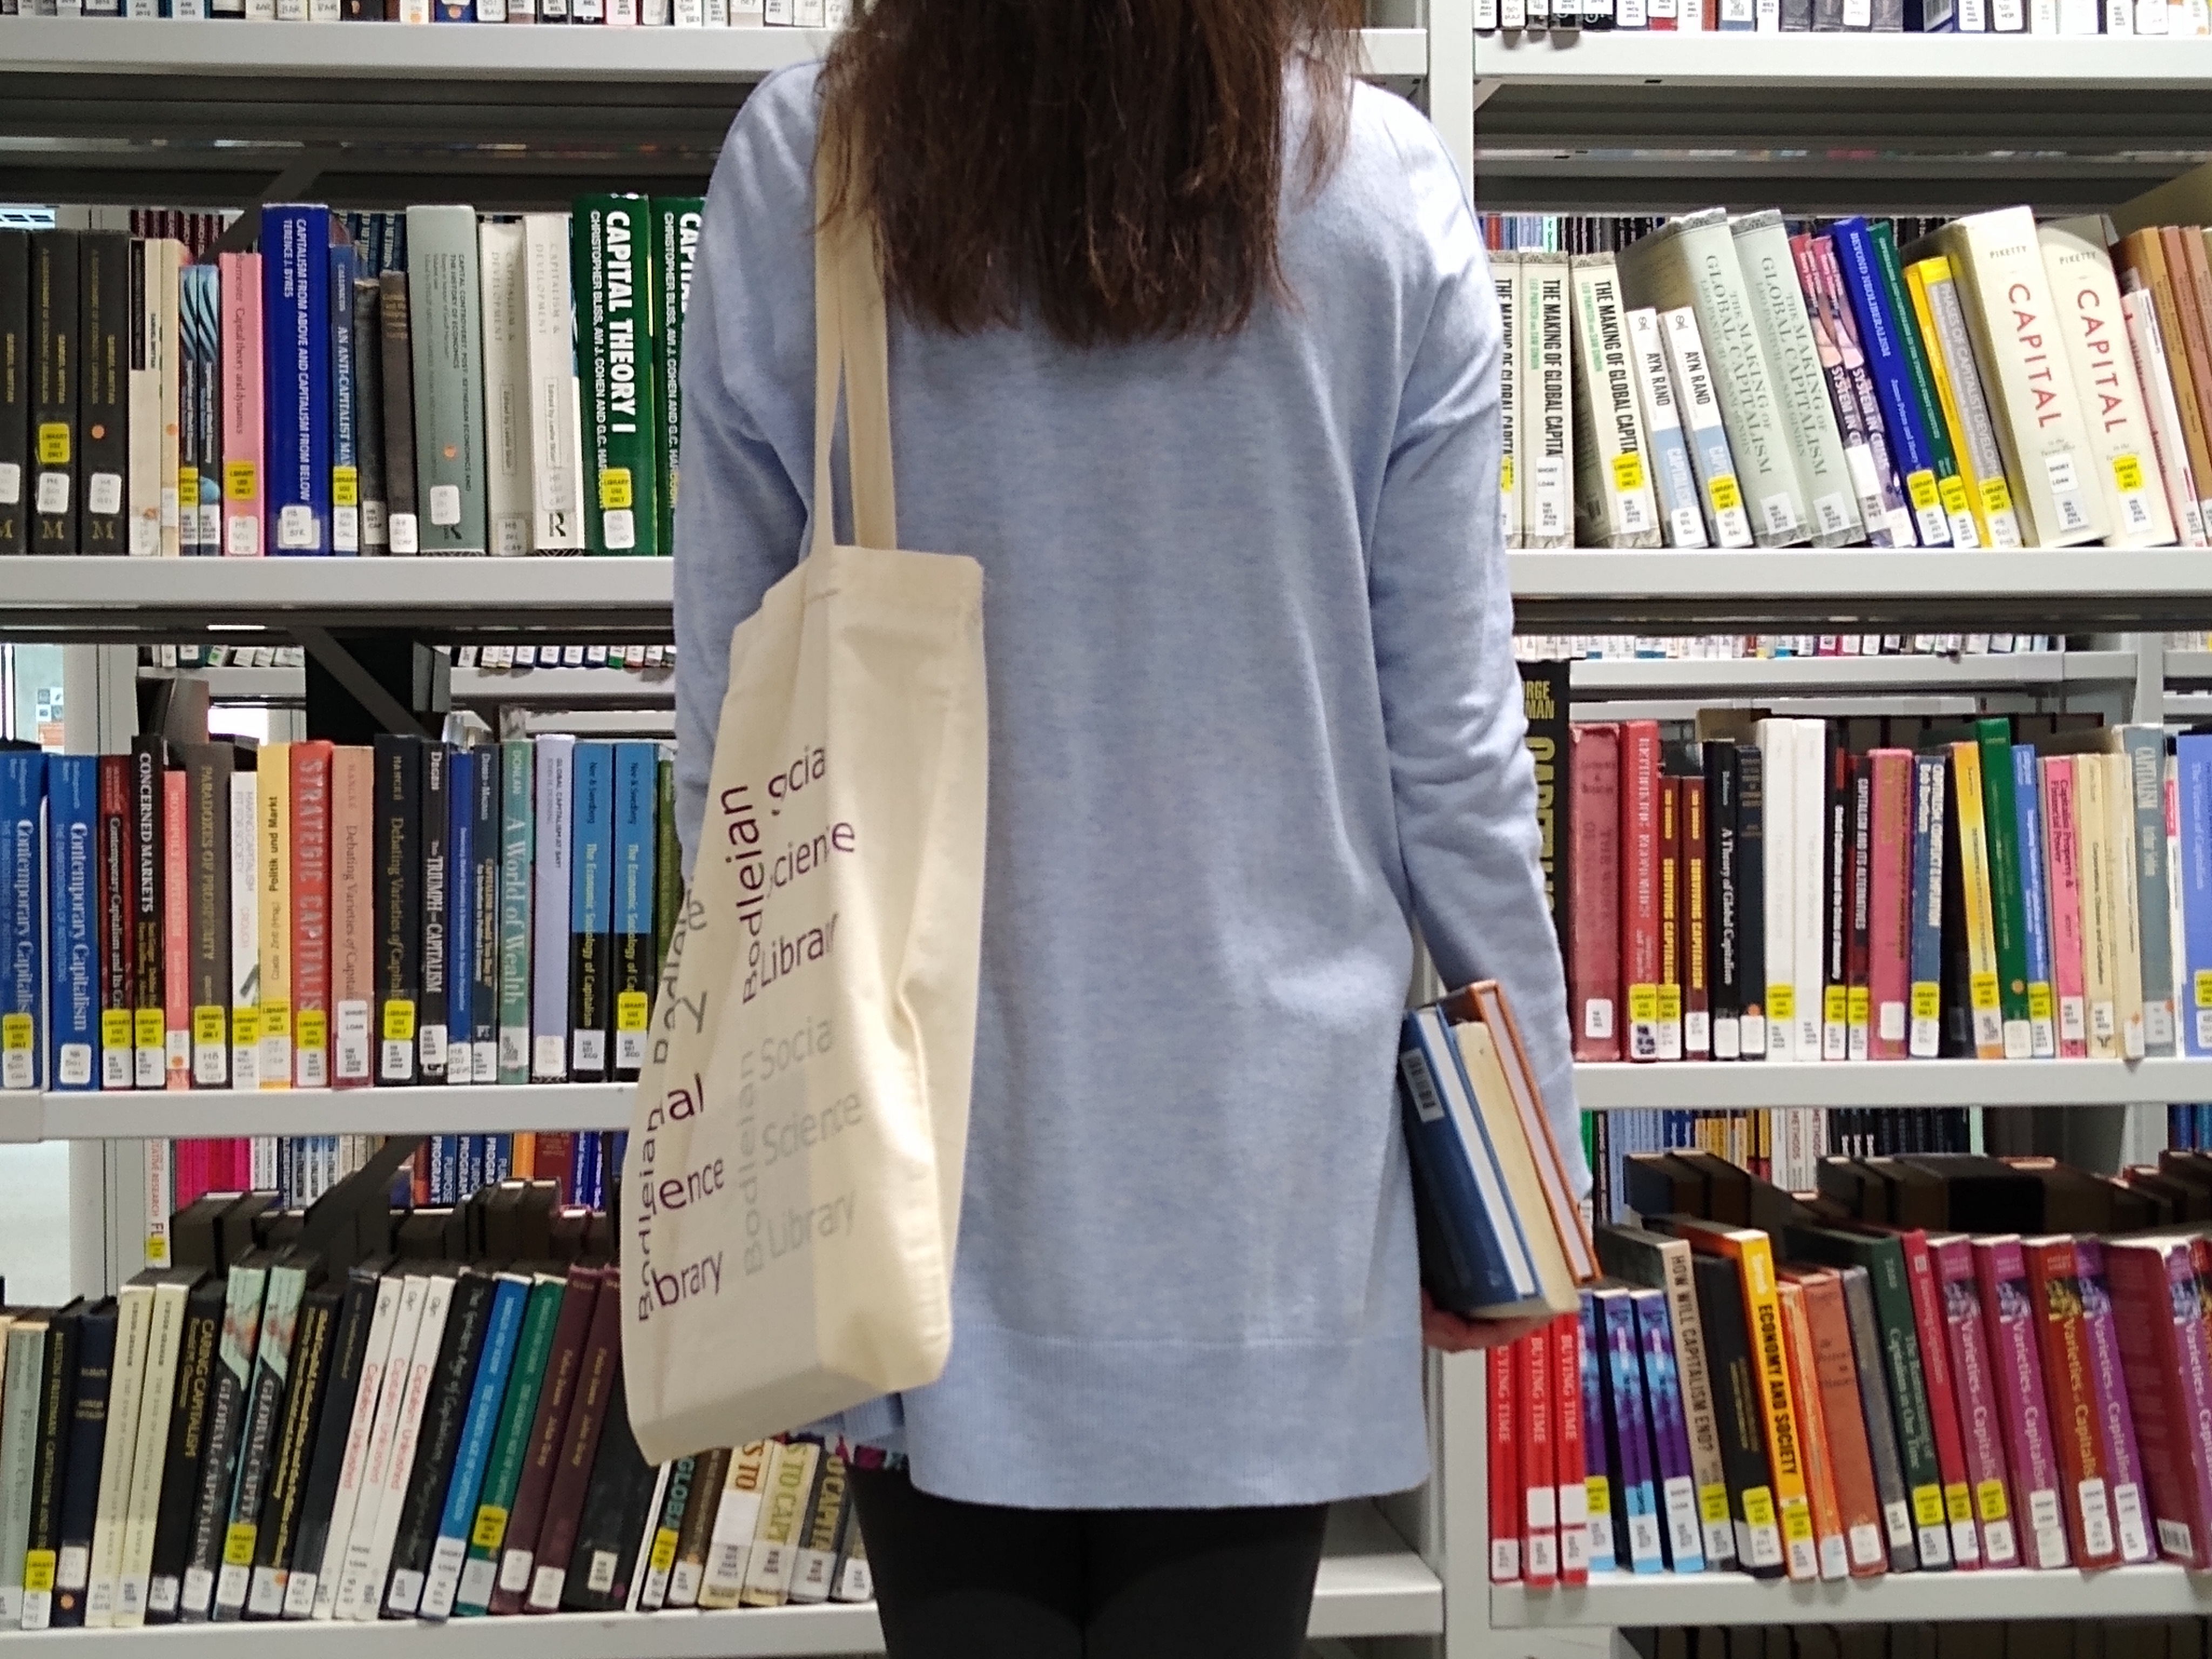 The back view of a person carrying some books and with an SSL bag over their shoulder, stood in front of some book shelves.